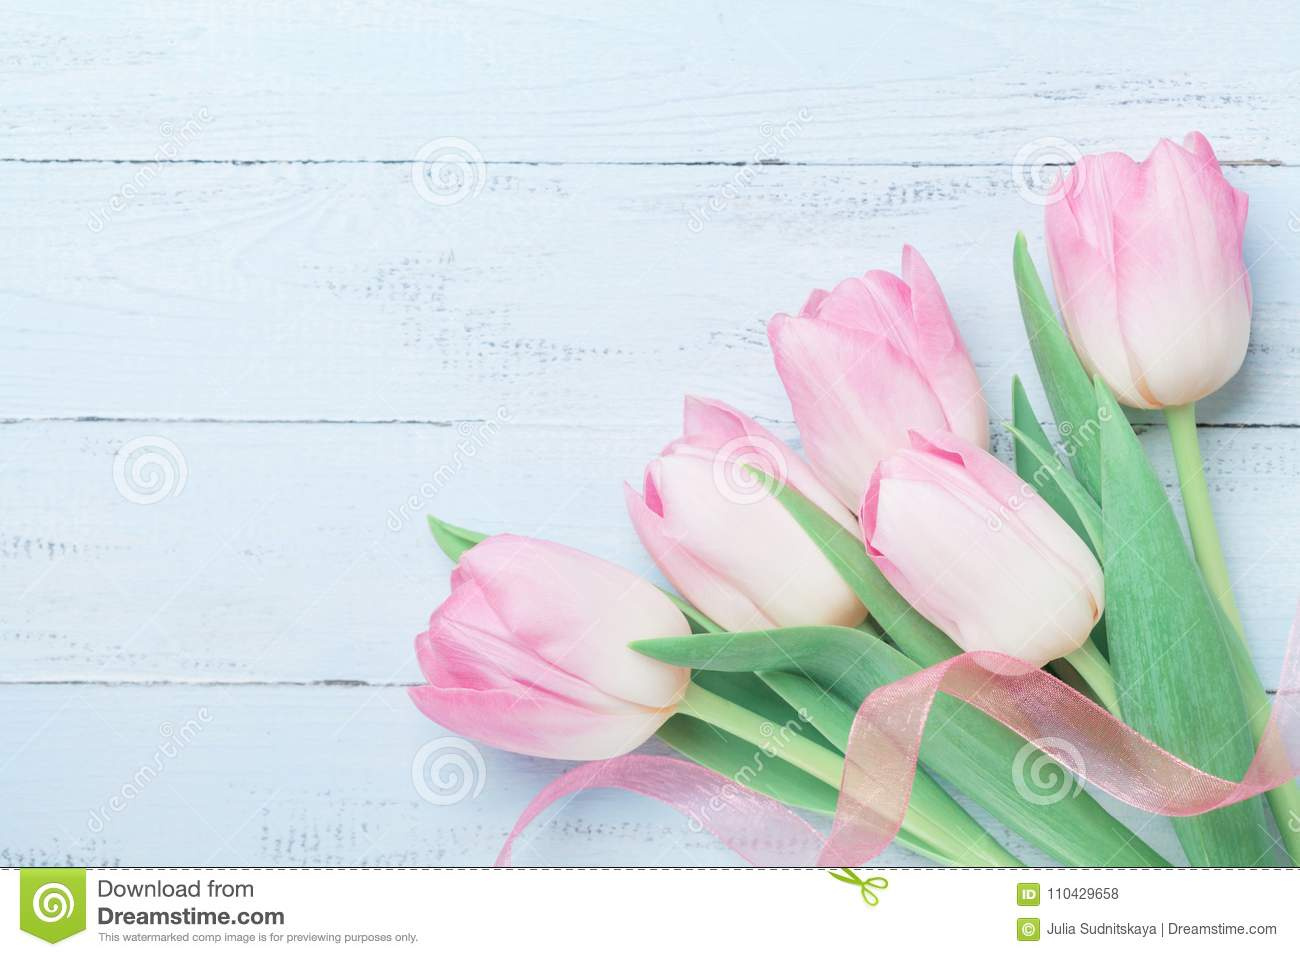 Tulip flowers decorated ribbon on blue table for Womans or Mothers day. Beautiful spring card. Top view.